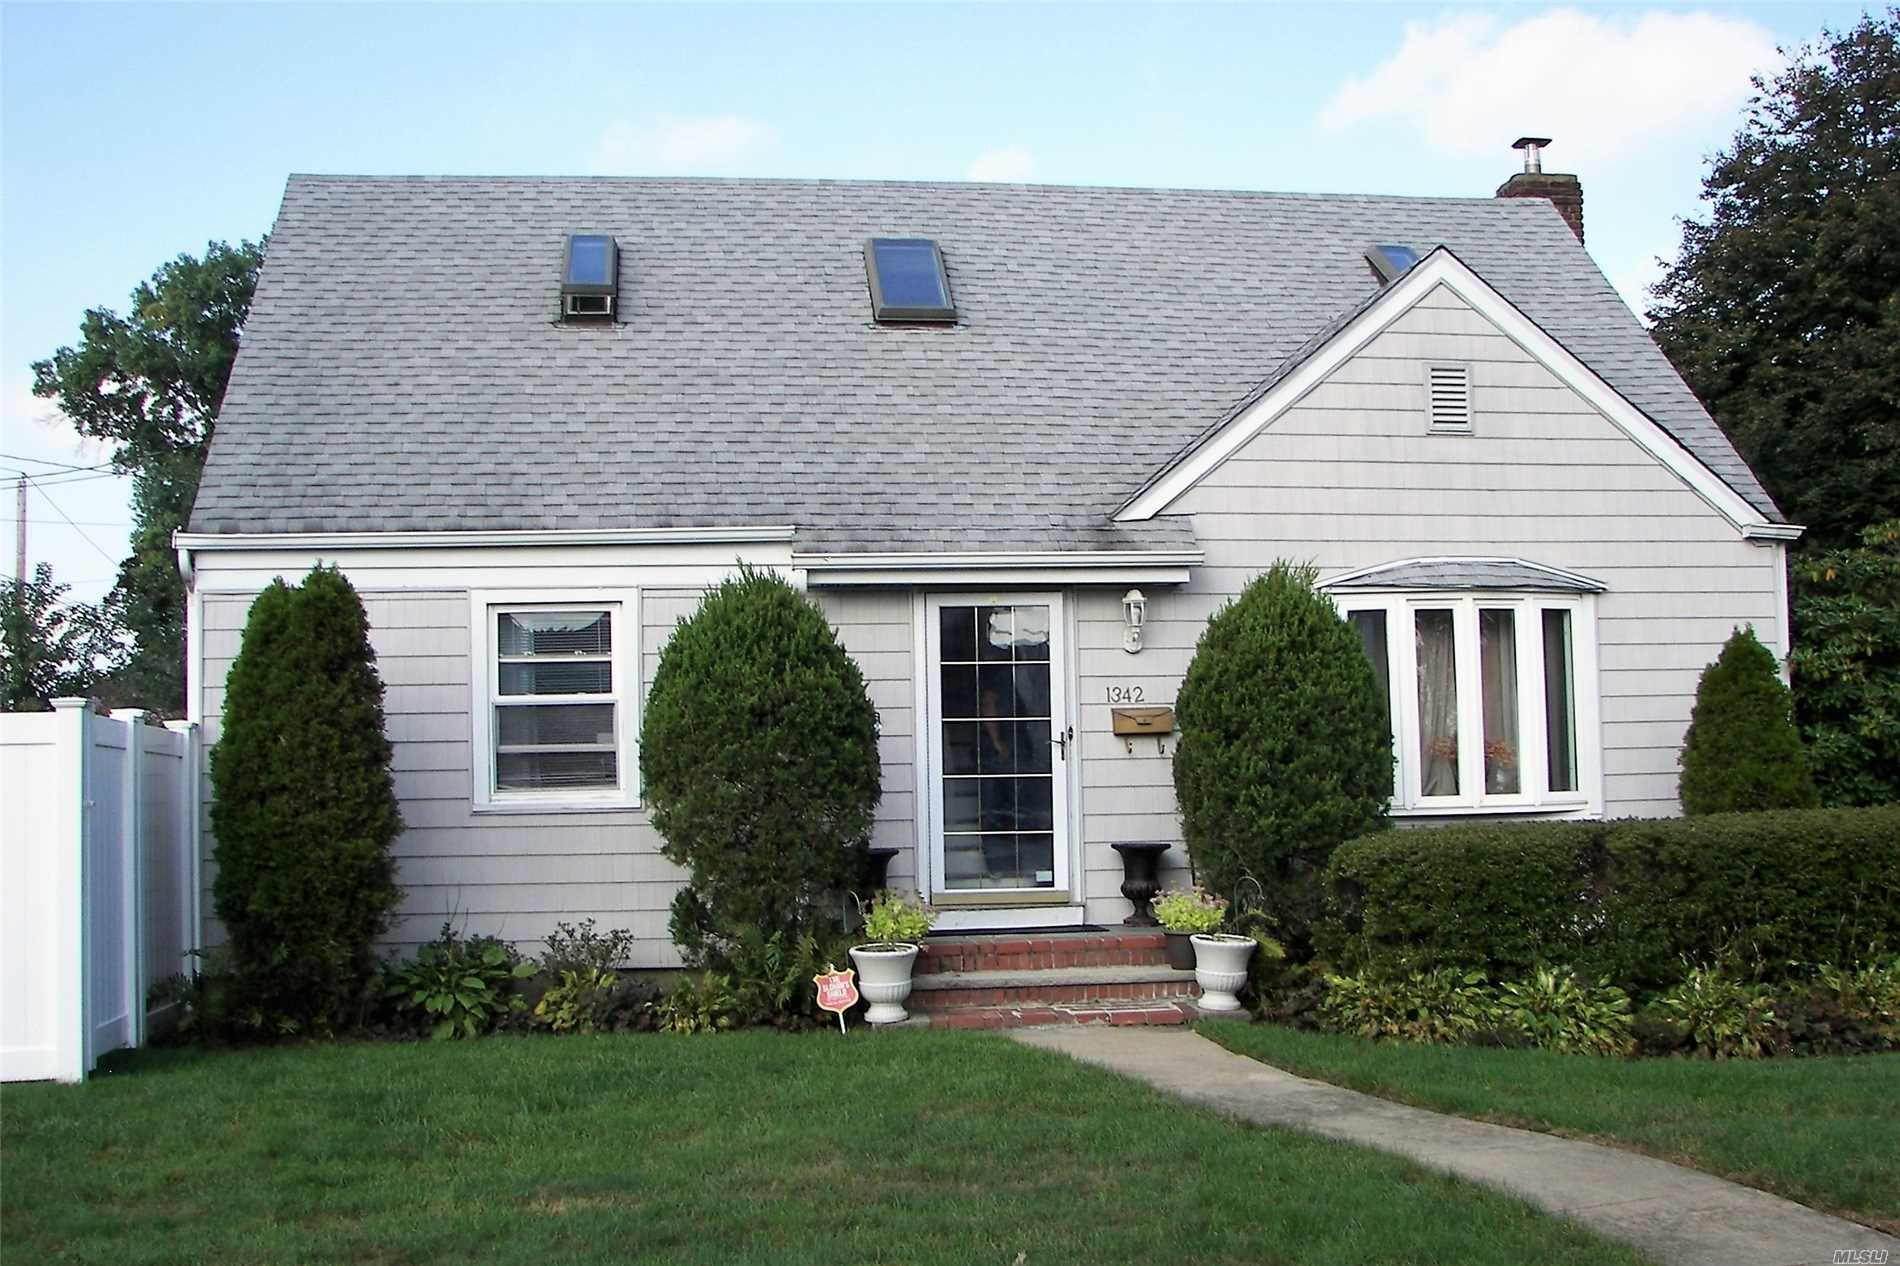 Affordable 4 Bedrooms Cape Home. 1st Floor Has Lr/Dr, Master Bdrm. 2nd Bdrm And 2nd Floor Has 2 Generous Sized Bedrooms With Potential For An Additional Bathroom. Basement Is Finished With A Wet Bar, Family Room And Full Bath. 220 Amps Electrical, 4Yrs Young Roof, New Efficiency Boiler And Private Yard With Pvc Fence. Don't Miss This Opportunity To Live On A Great Street In Baldwin. Priced To Sell!